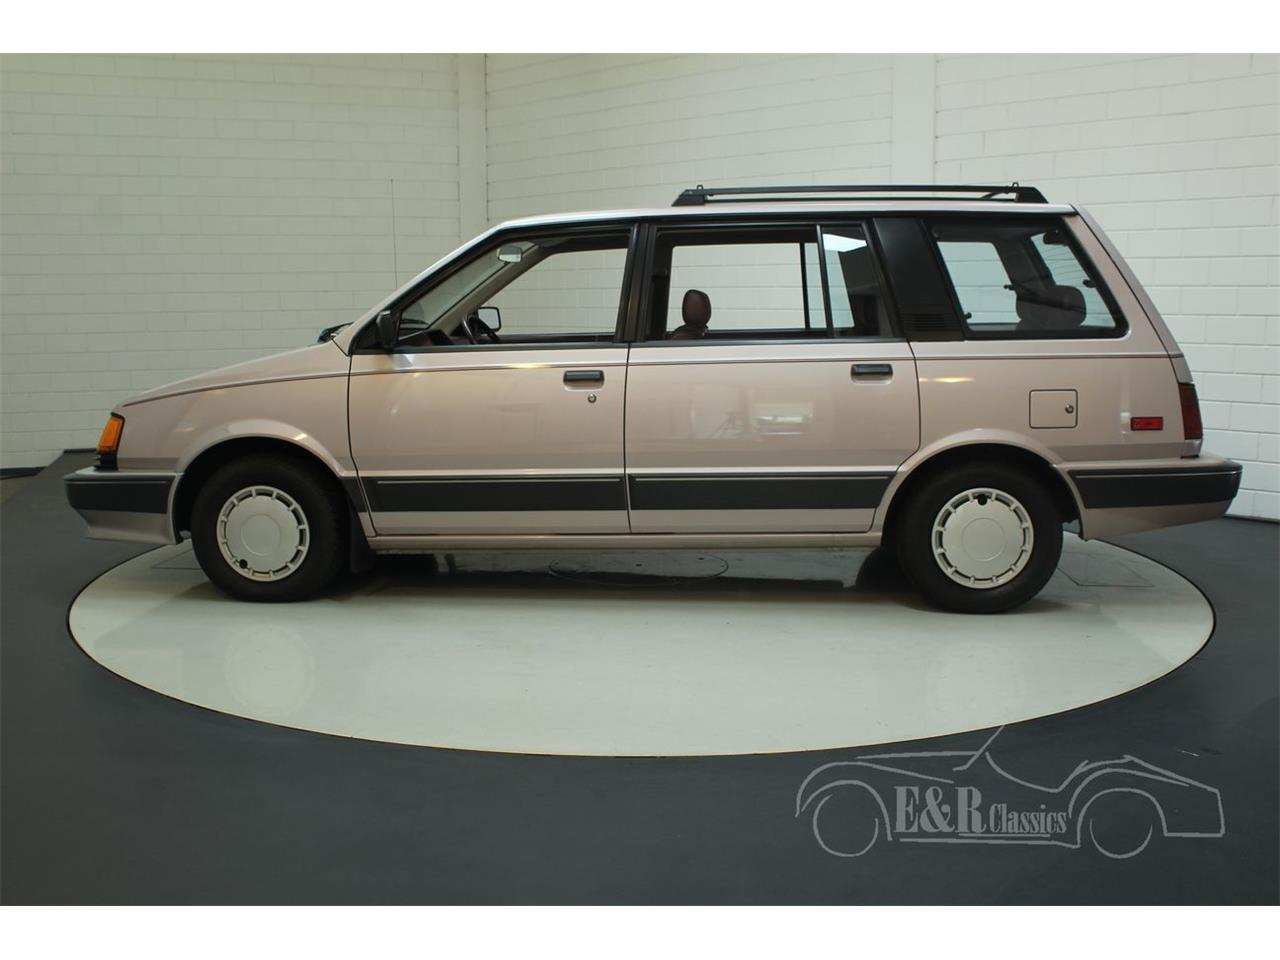 Large Picture of '87 Dodge Colt located in Waalwijk [nl] Pays-Bas Offered by E & R Classics - PVV4